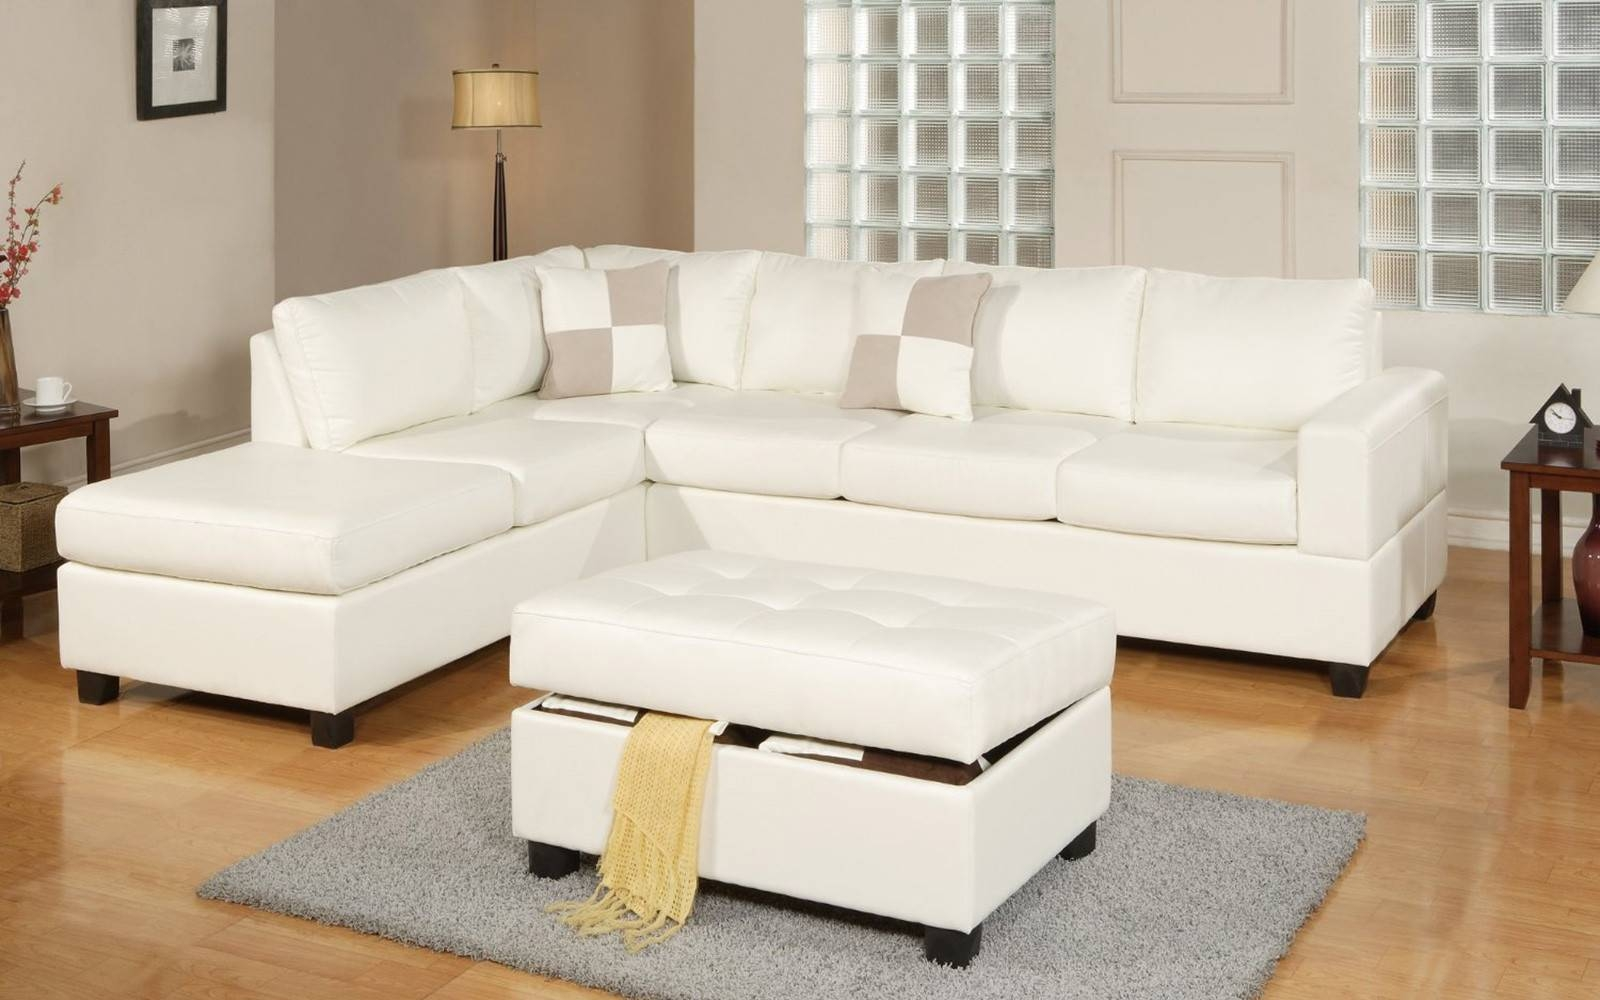 3 Piece Modern Reversible Tufted Bonded Leather Sectional Sofa Regarding Sofa With Chaise And Ottoman (Photo 30 of 30)